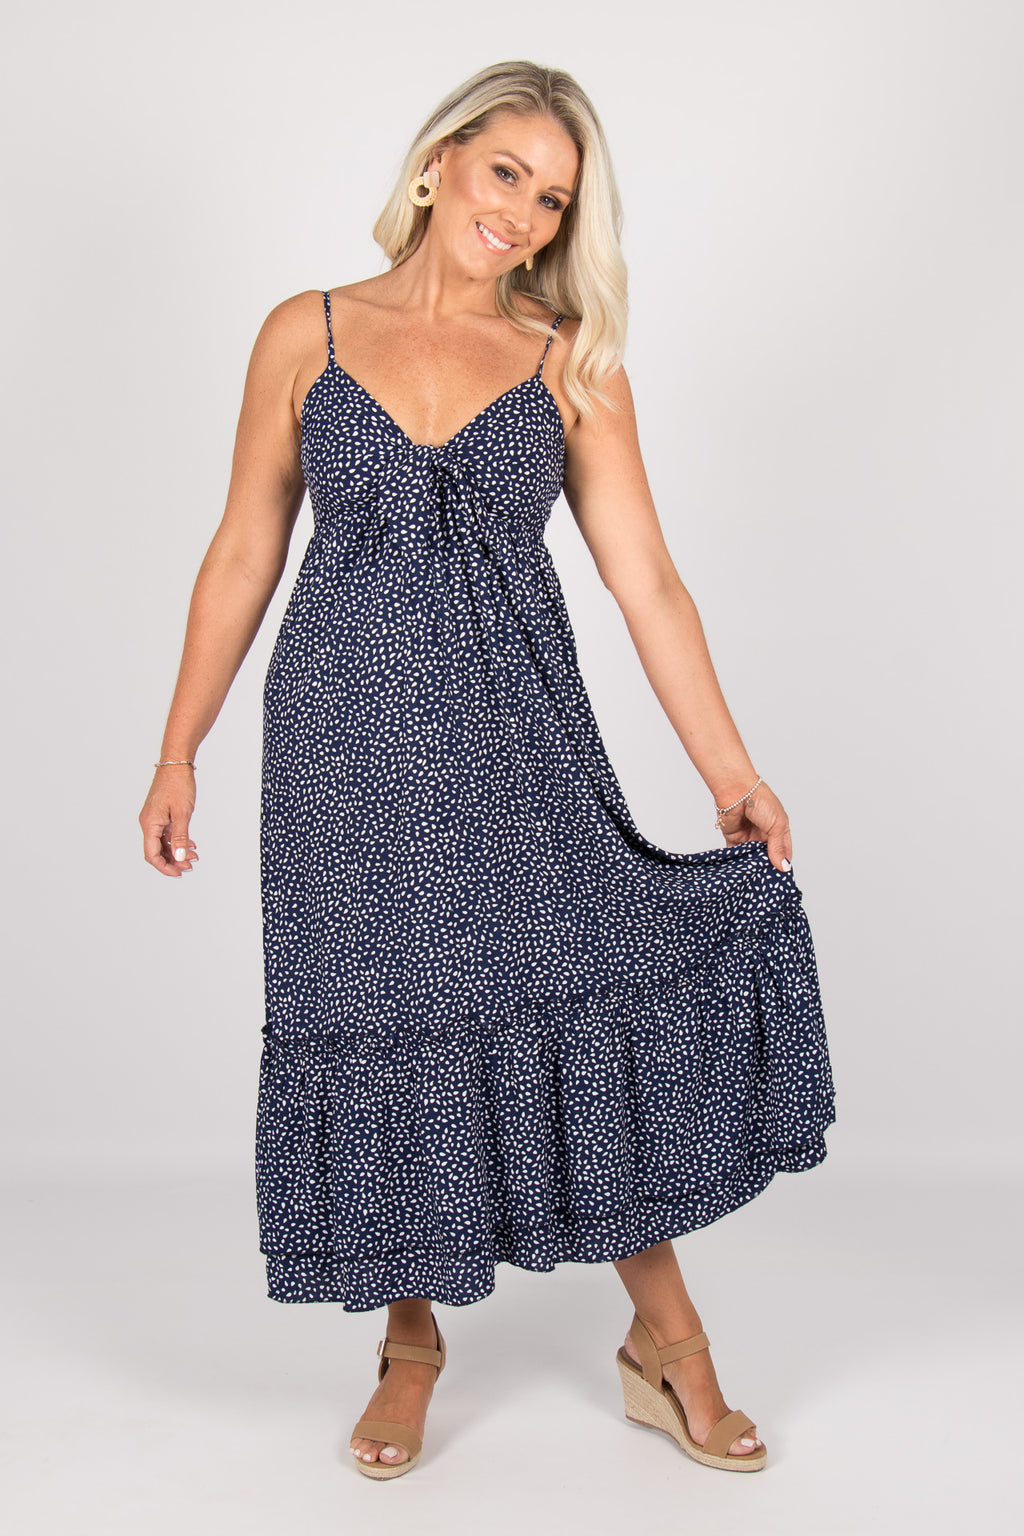 Lydia Dress in Navy Spot